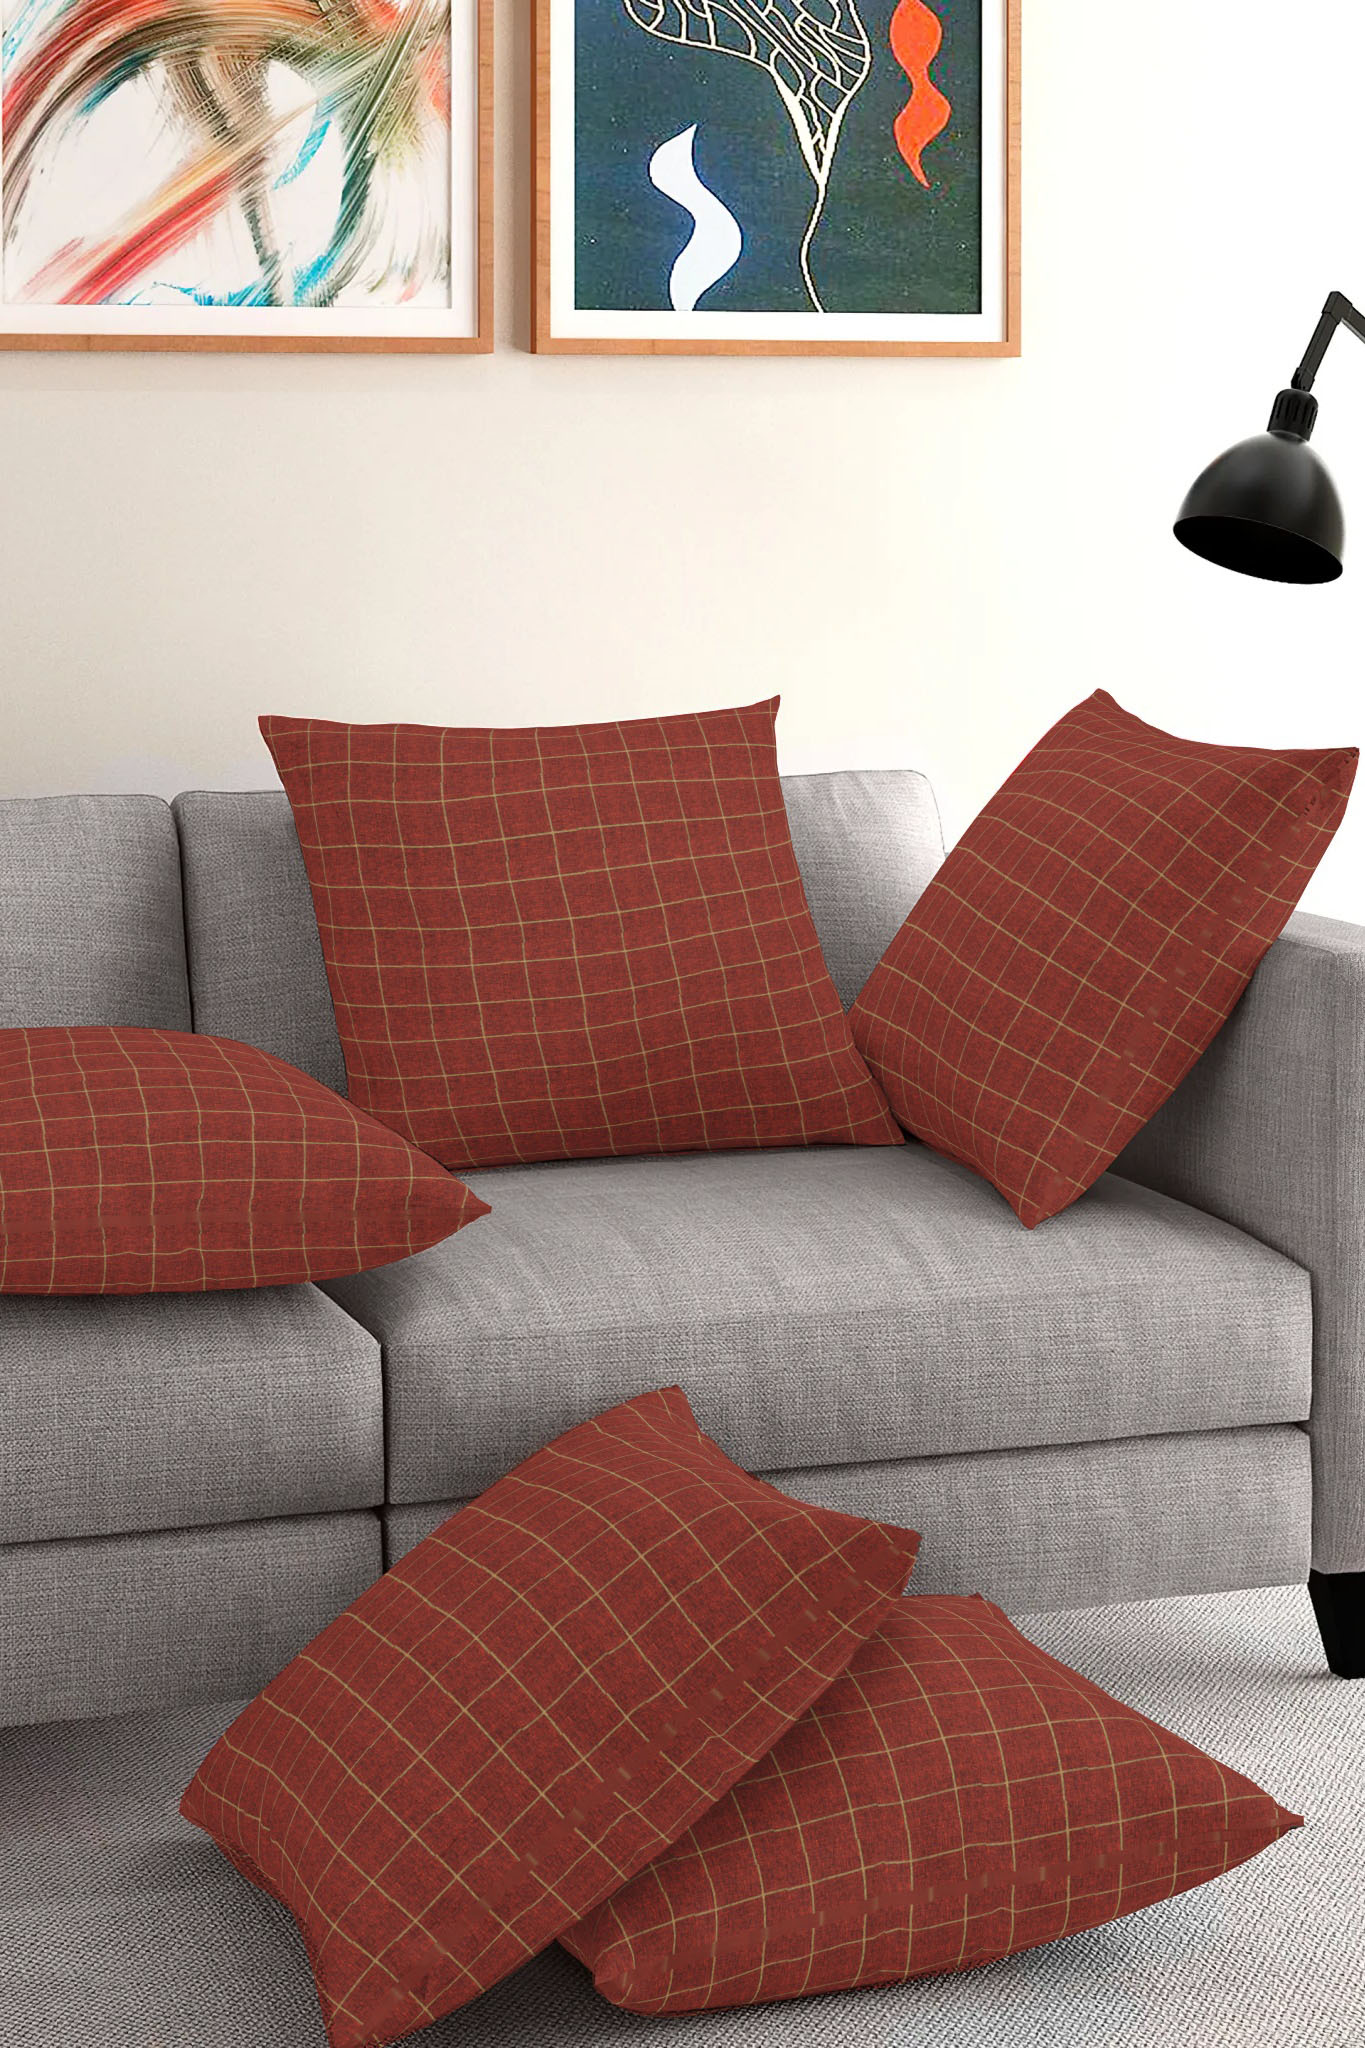 Set of 5-Maroon Golden Cotton Cushion Cover-35411-16x16 Inches